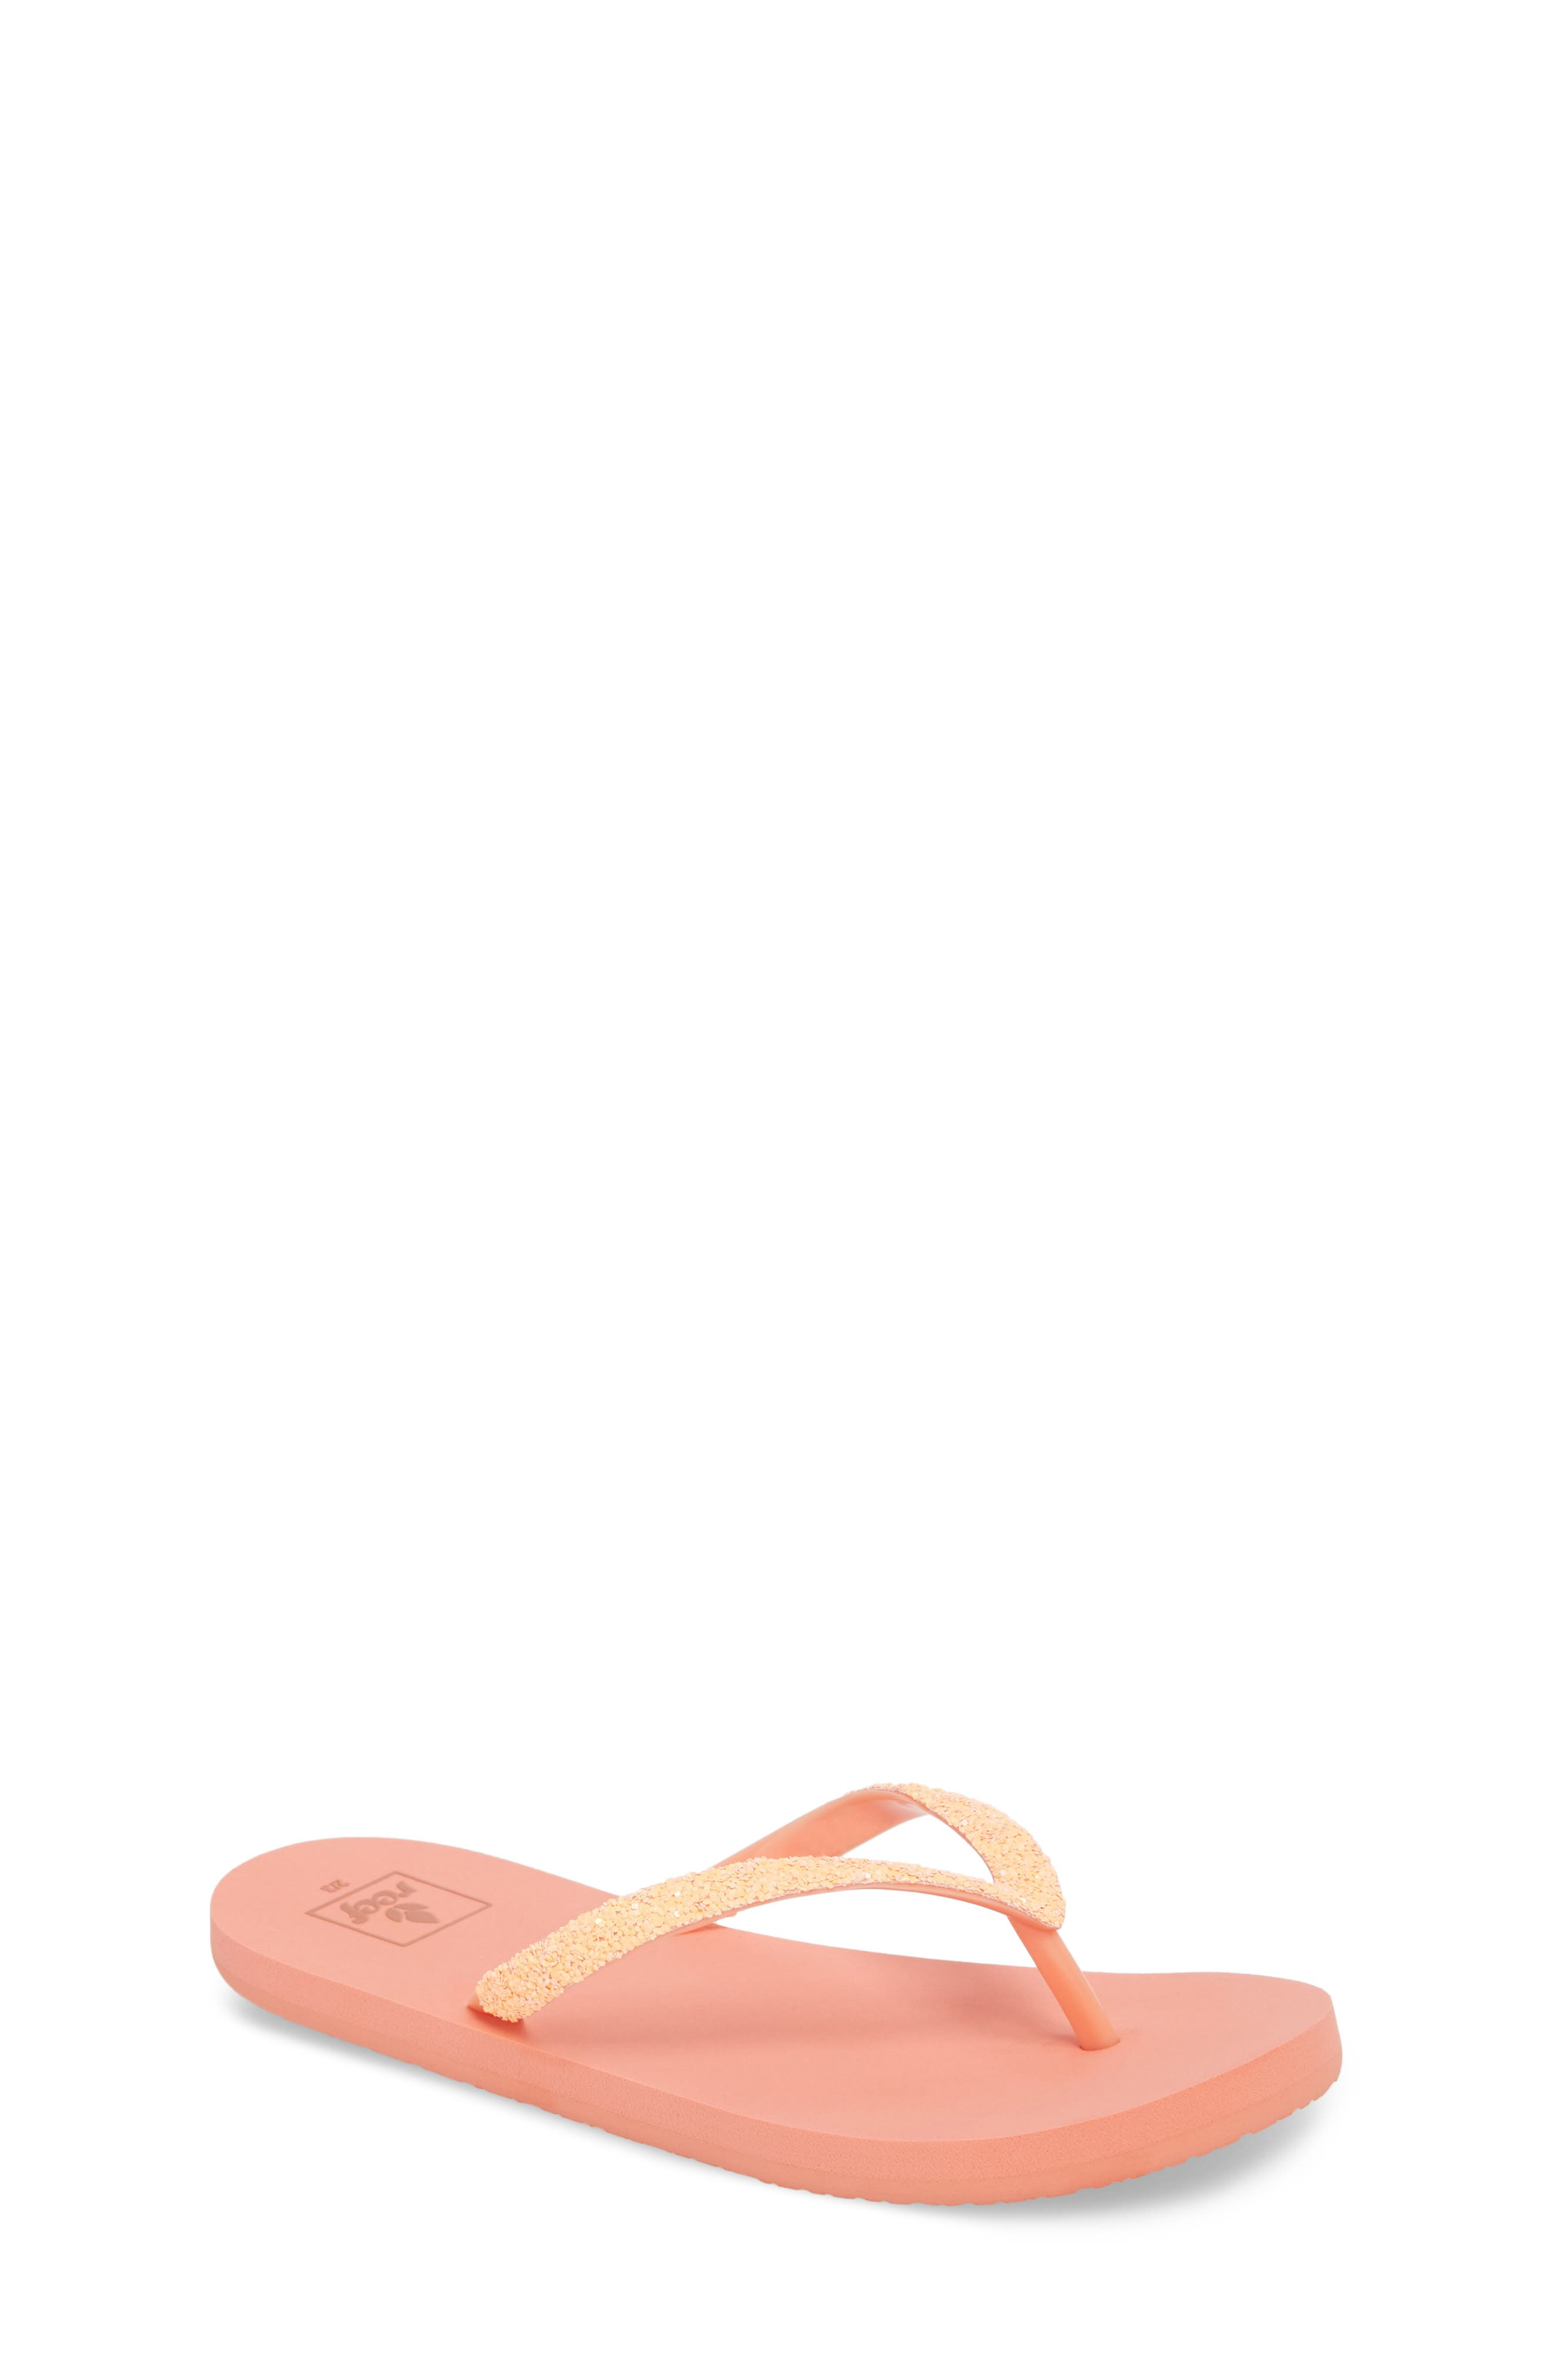 Little Stargazer Glitter Sandal,                         Main,                         color, Orange